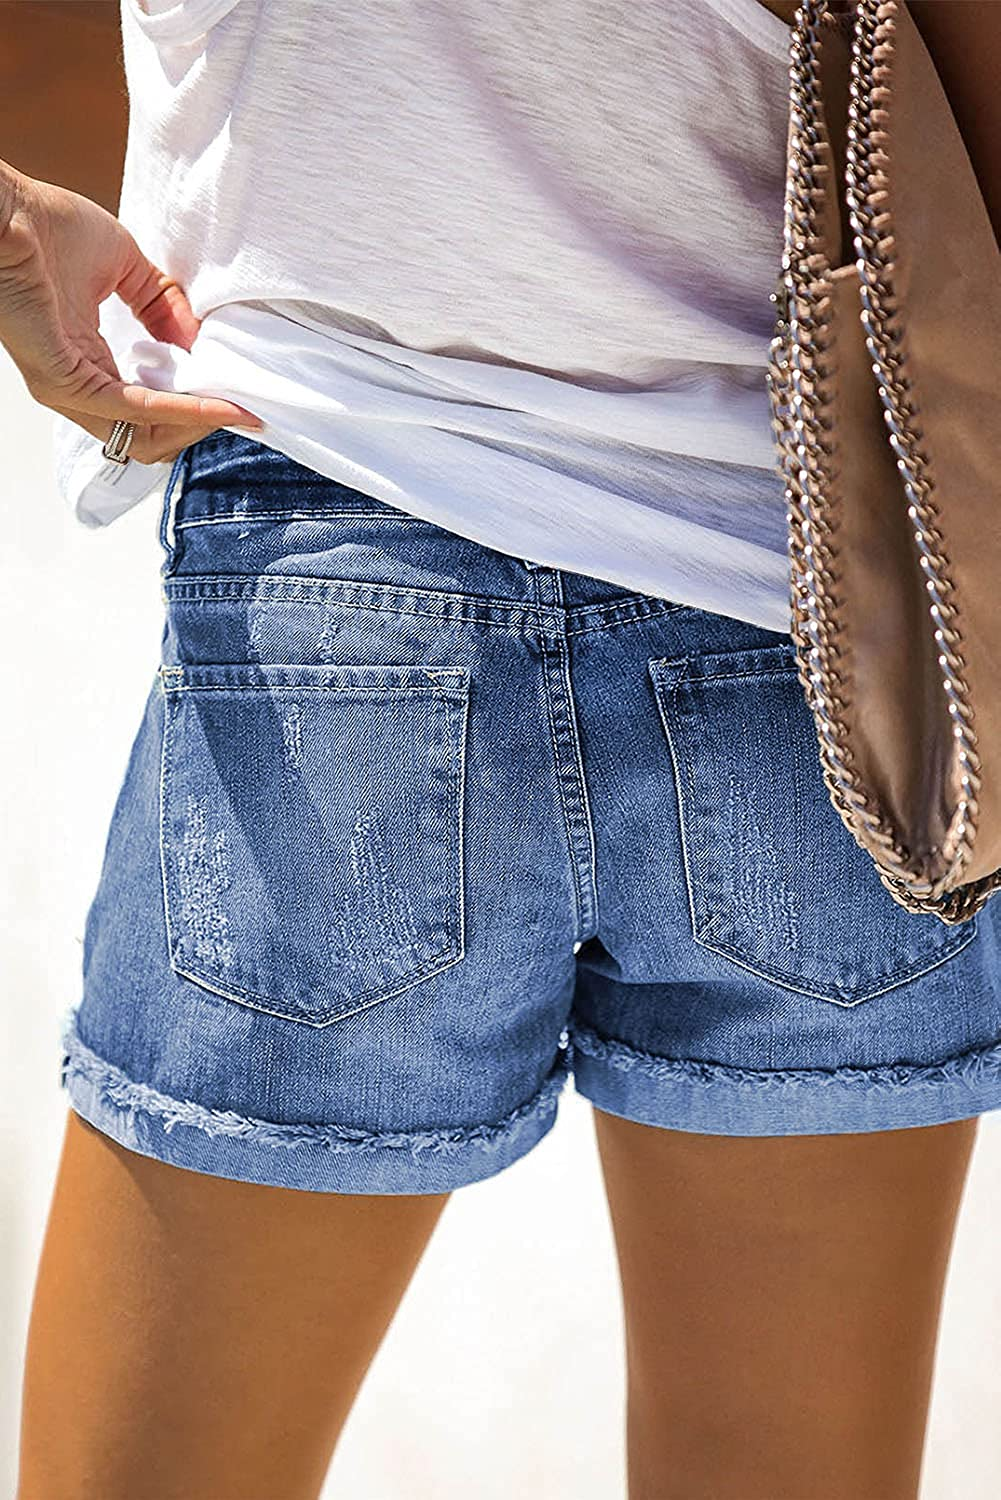 Women Mid Waist Frayed Raw Hem Ripped Patchwork Hot Denim Shorts Summer Casual Loose Washed Jeans Shorts